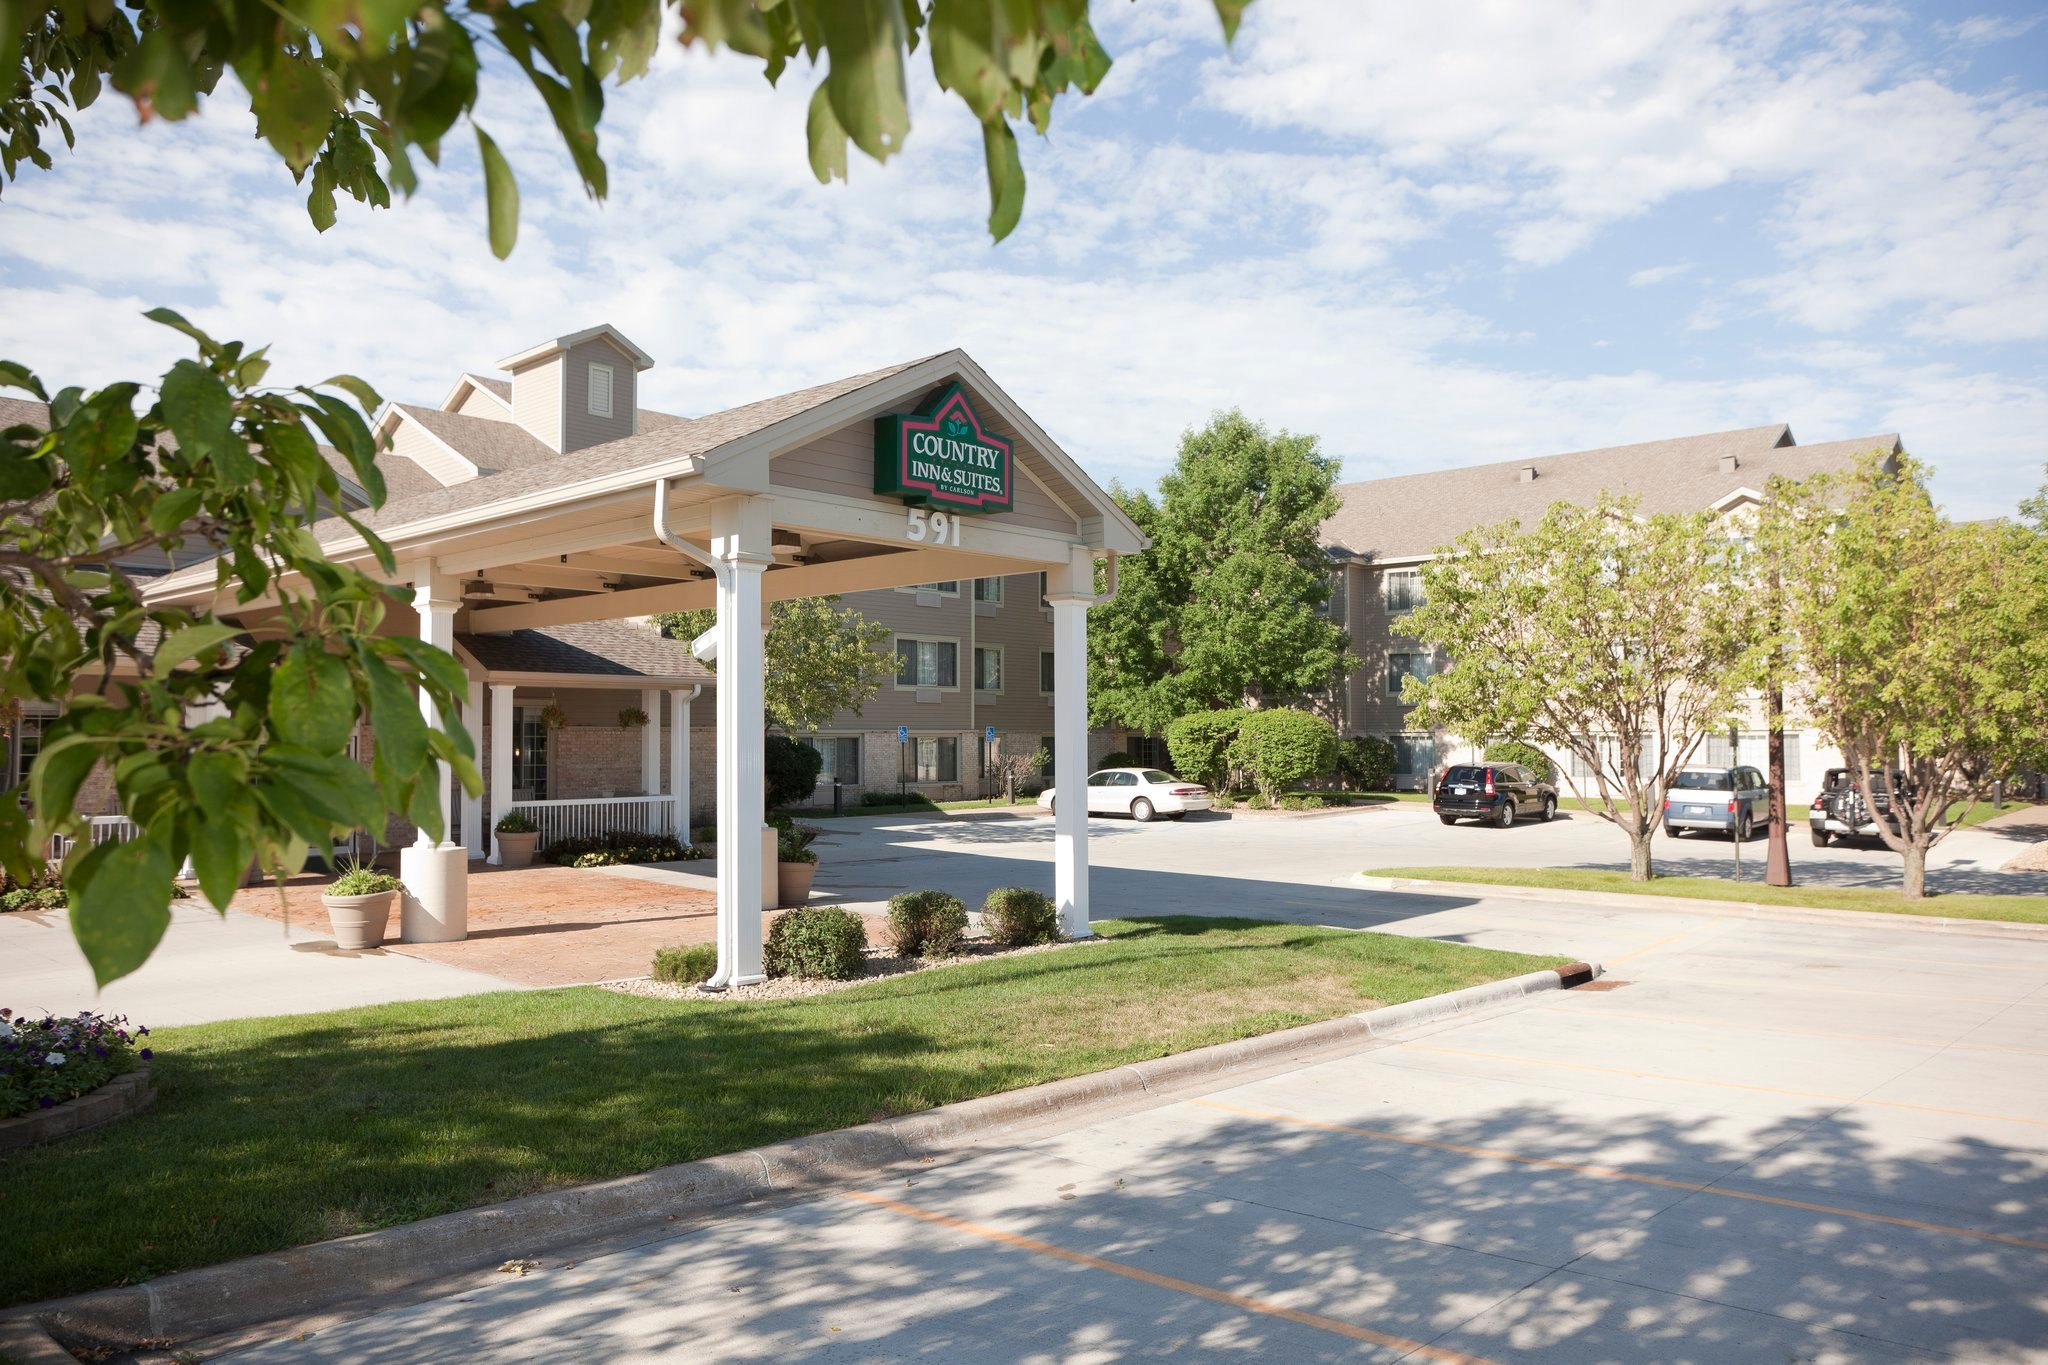 Country Inn & Suites By Carlson, Chanhassen